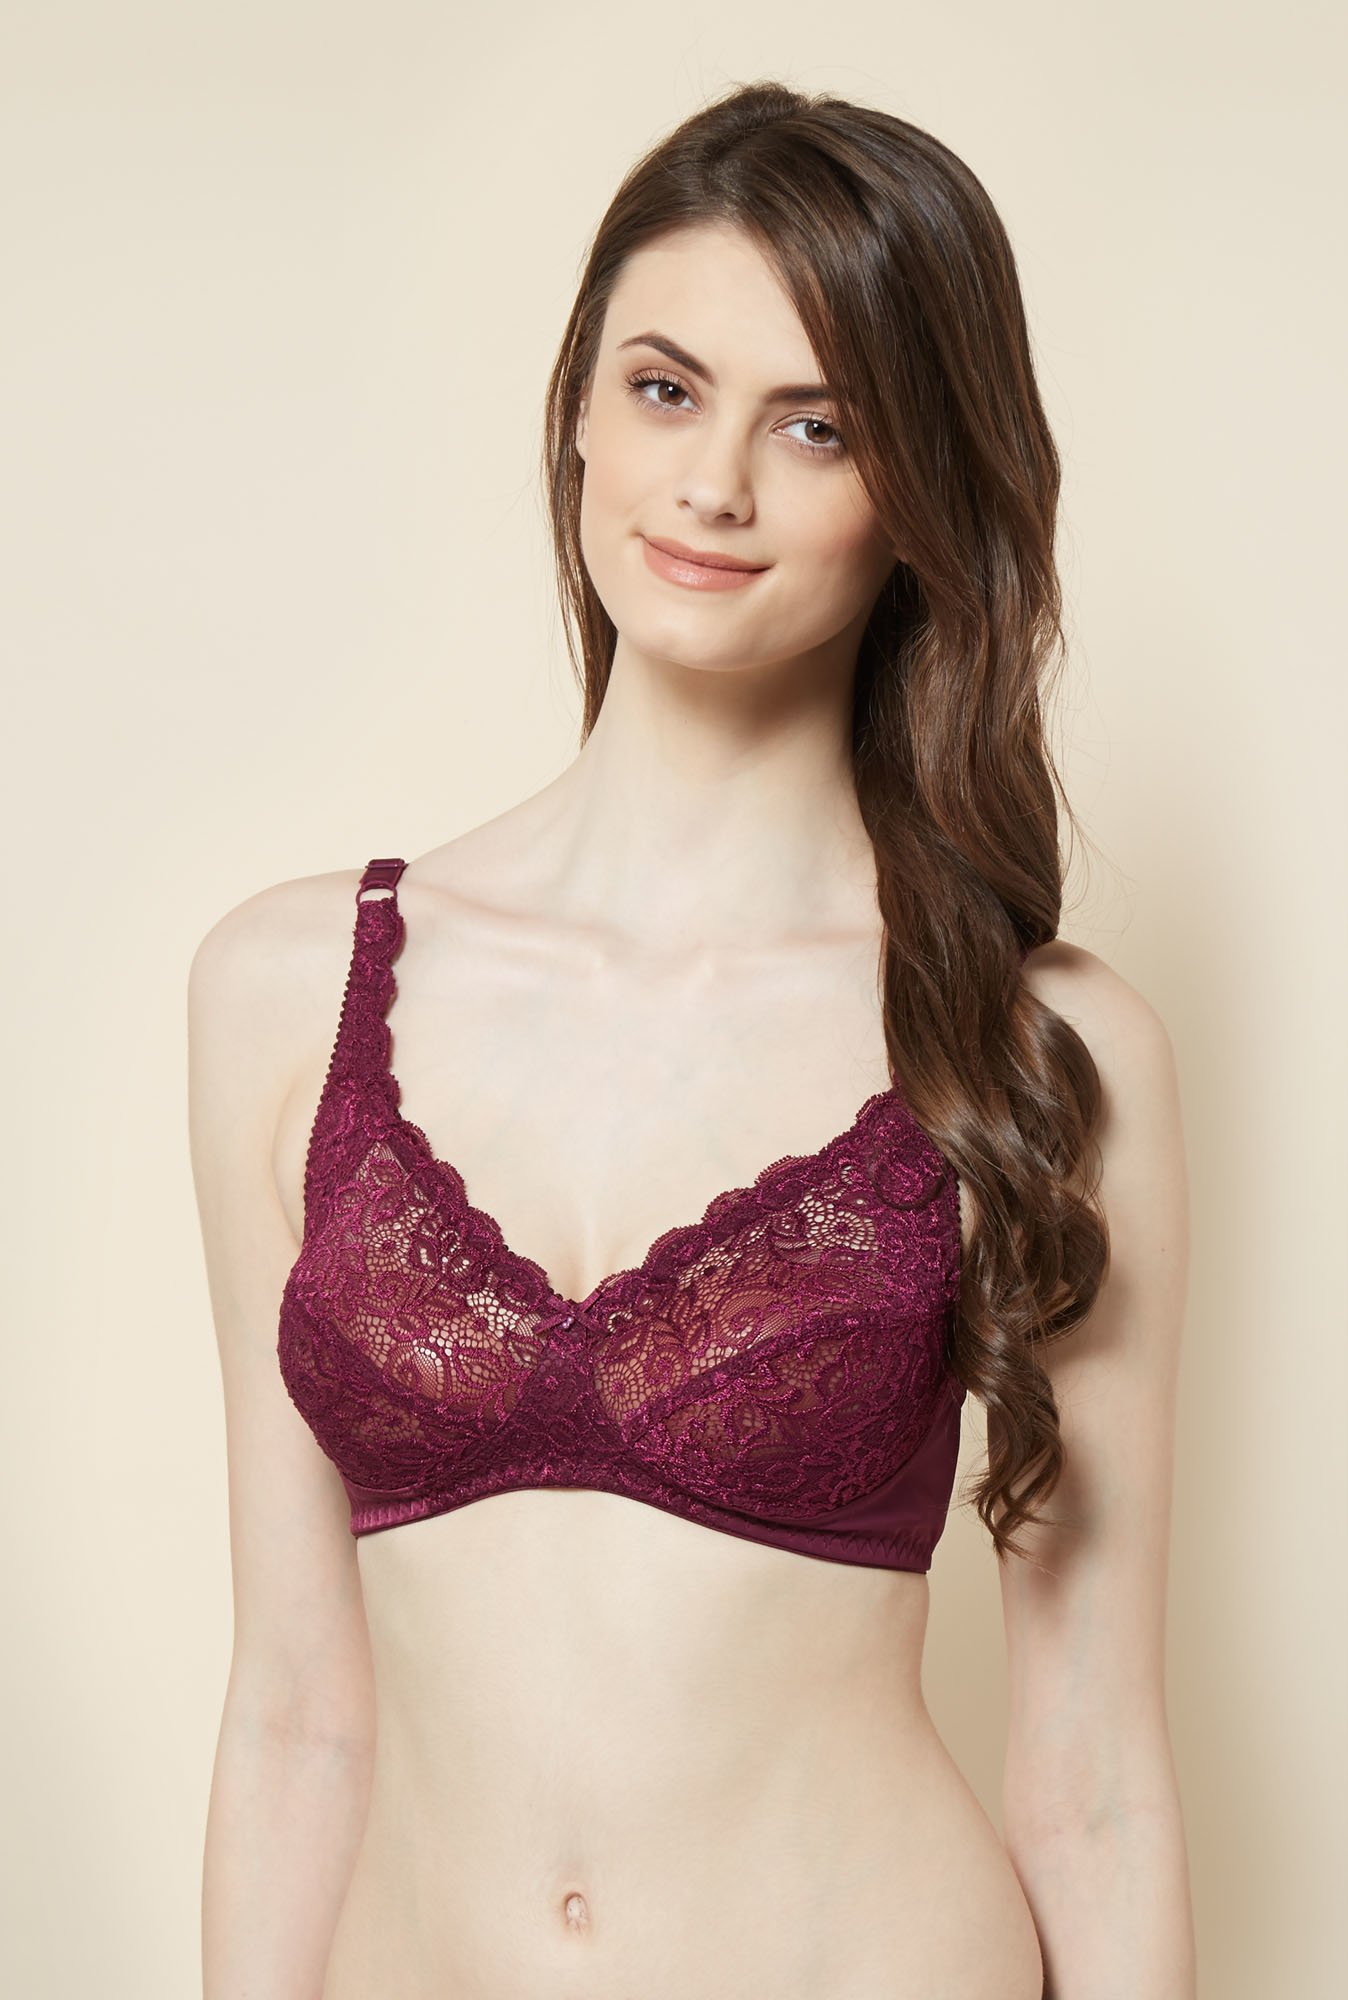 Little Lacy Wine Lace Bra